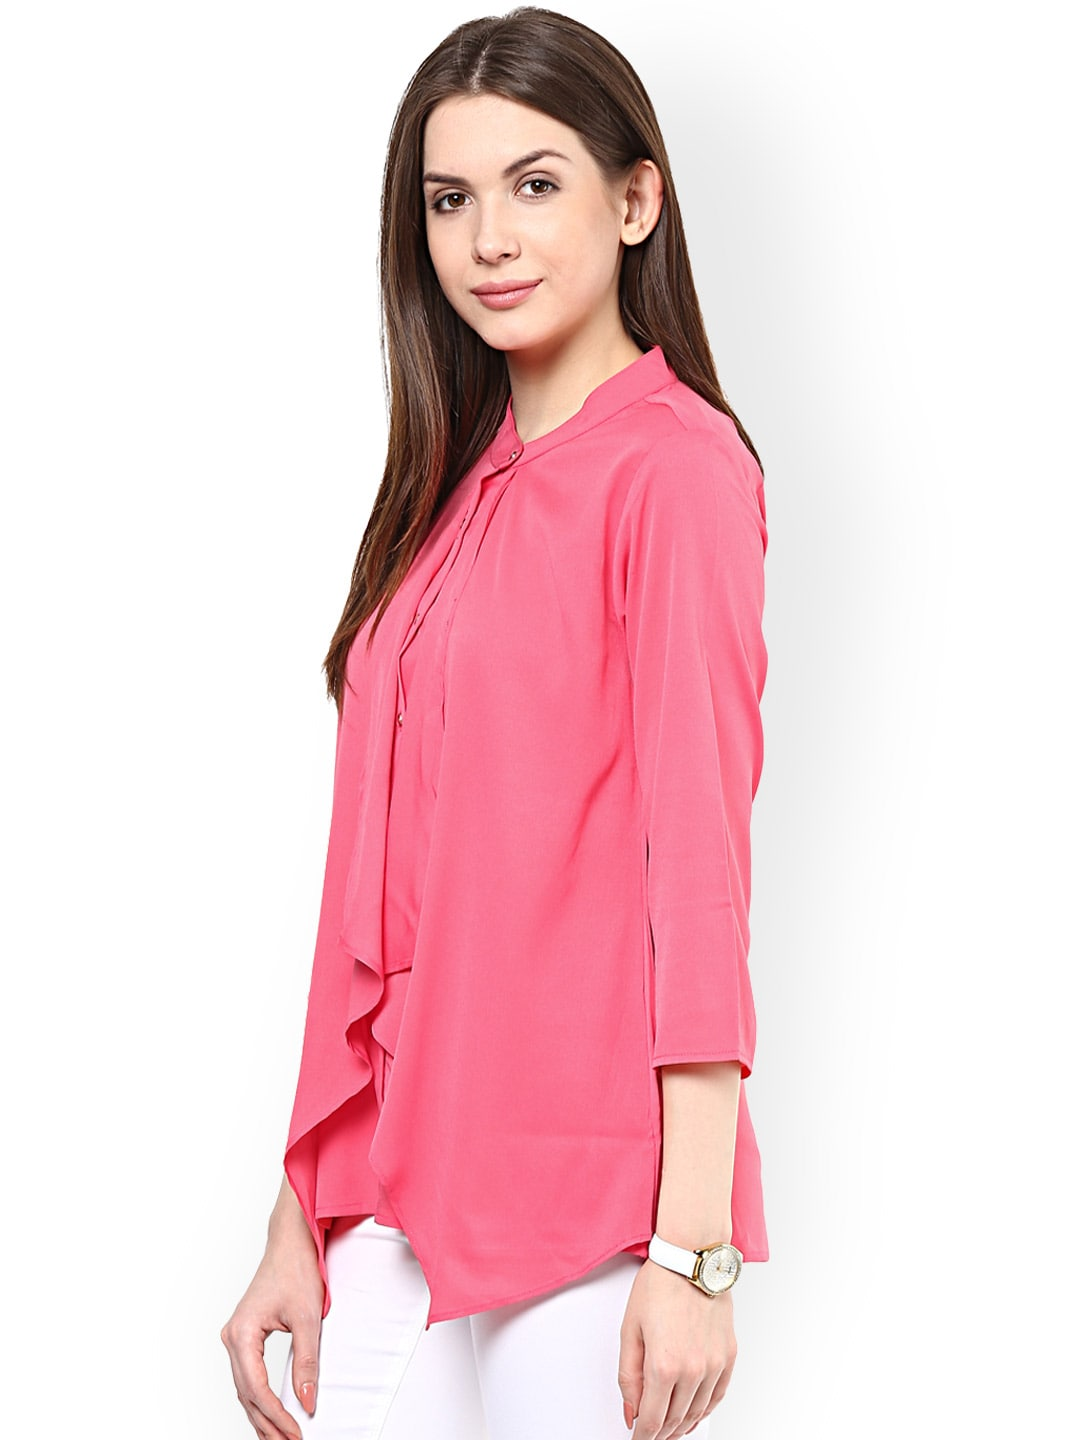 Women's Tops and Shirts For the trendiest women's shirts that range from casual to fancy, you'll find just what you need in Belk's tops collection. With a wide array of styles, including t-shirts, tunics, blouses and more, there's the perfect option for every occasion.